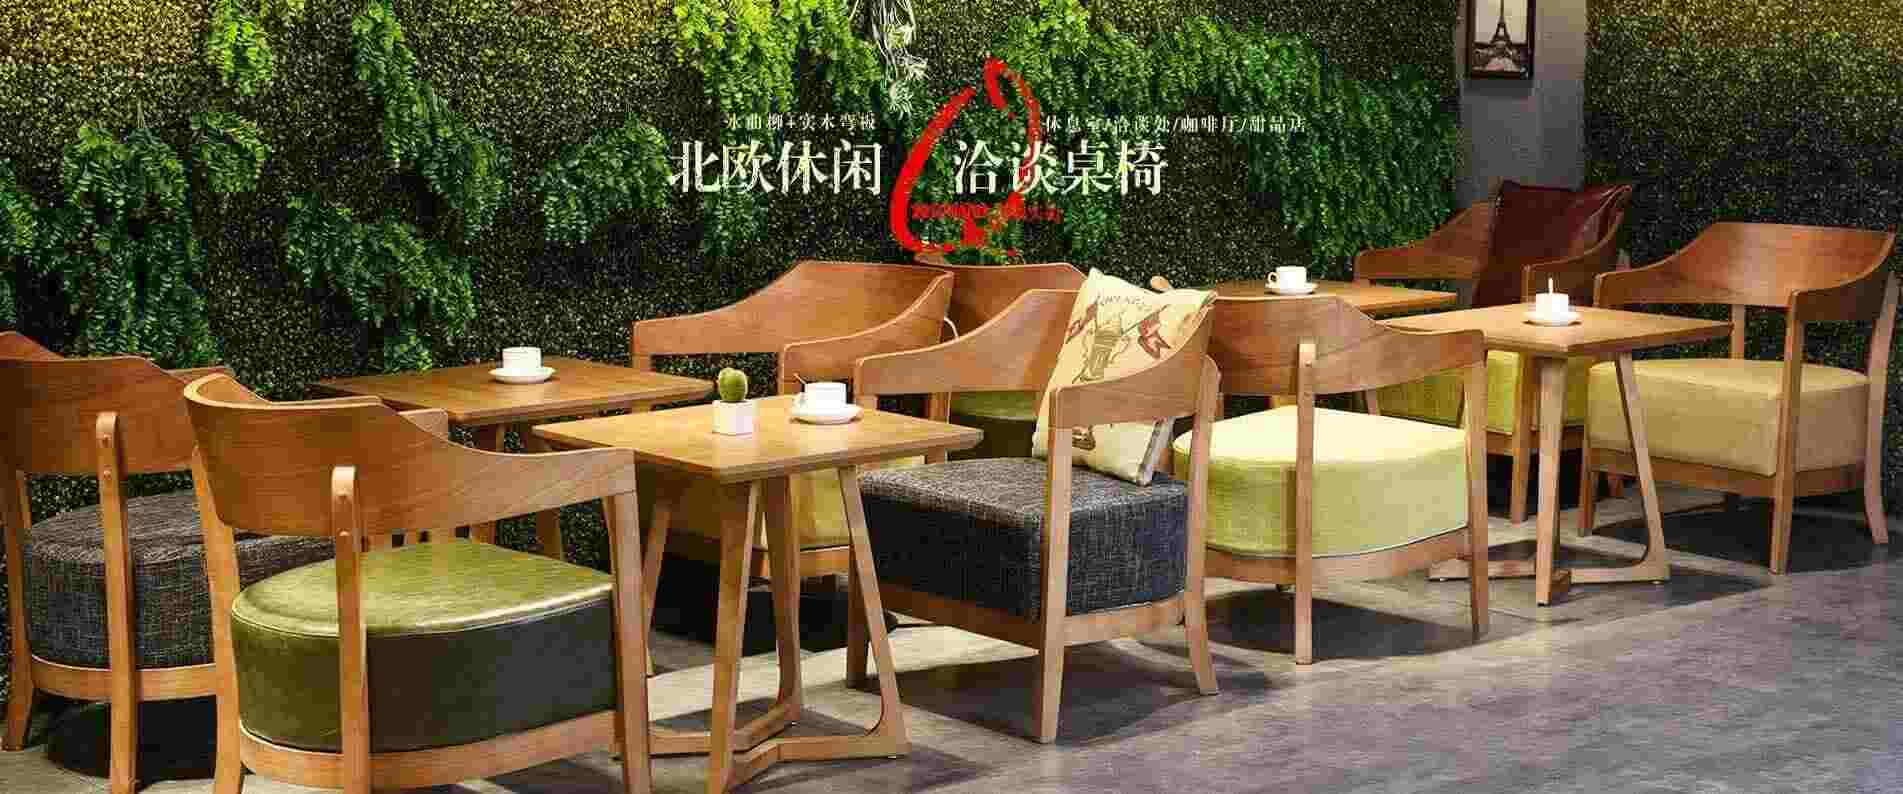 Chinese restaurant furniture